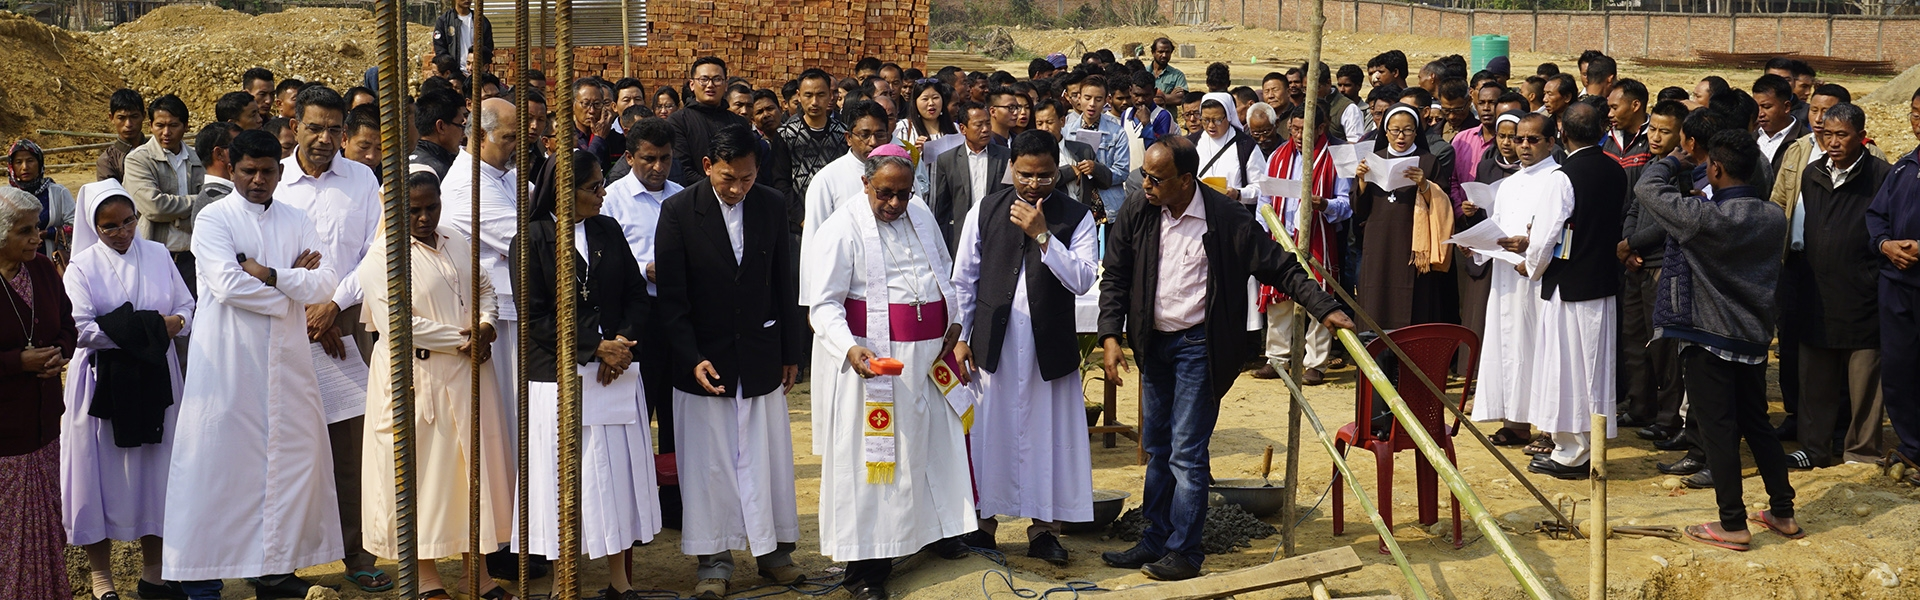 Foundation Stone was laid for the Peace Center in Nagaland